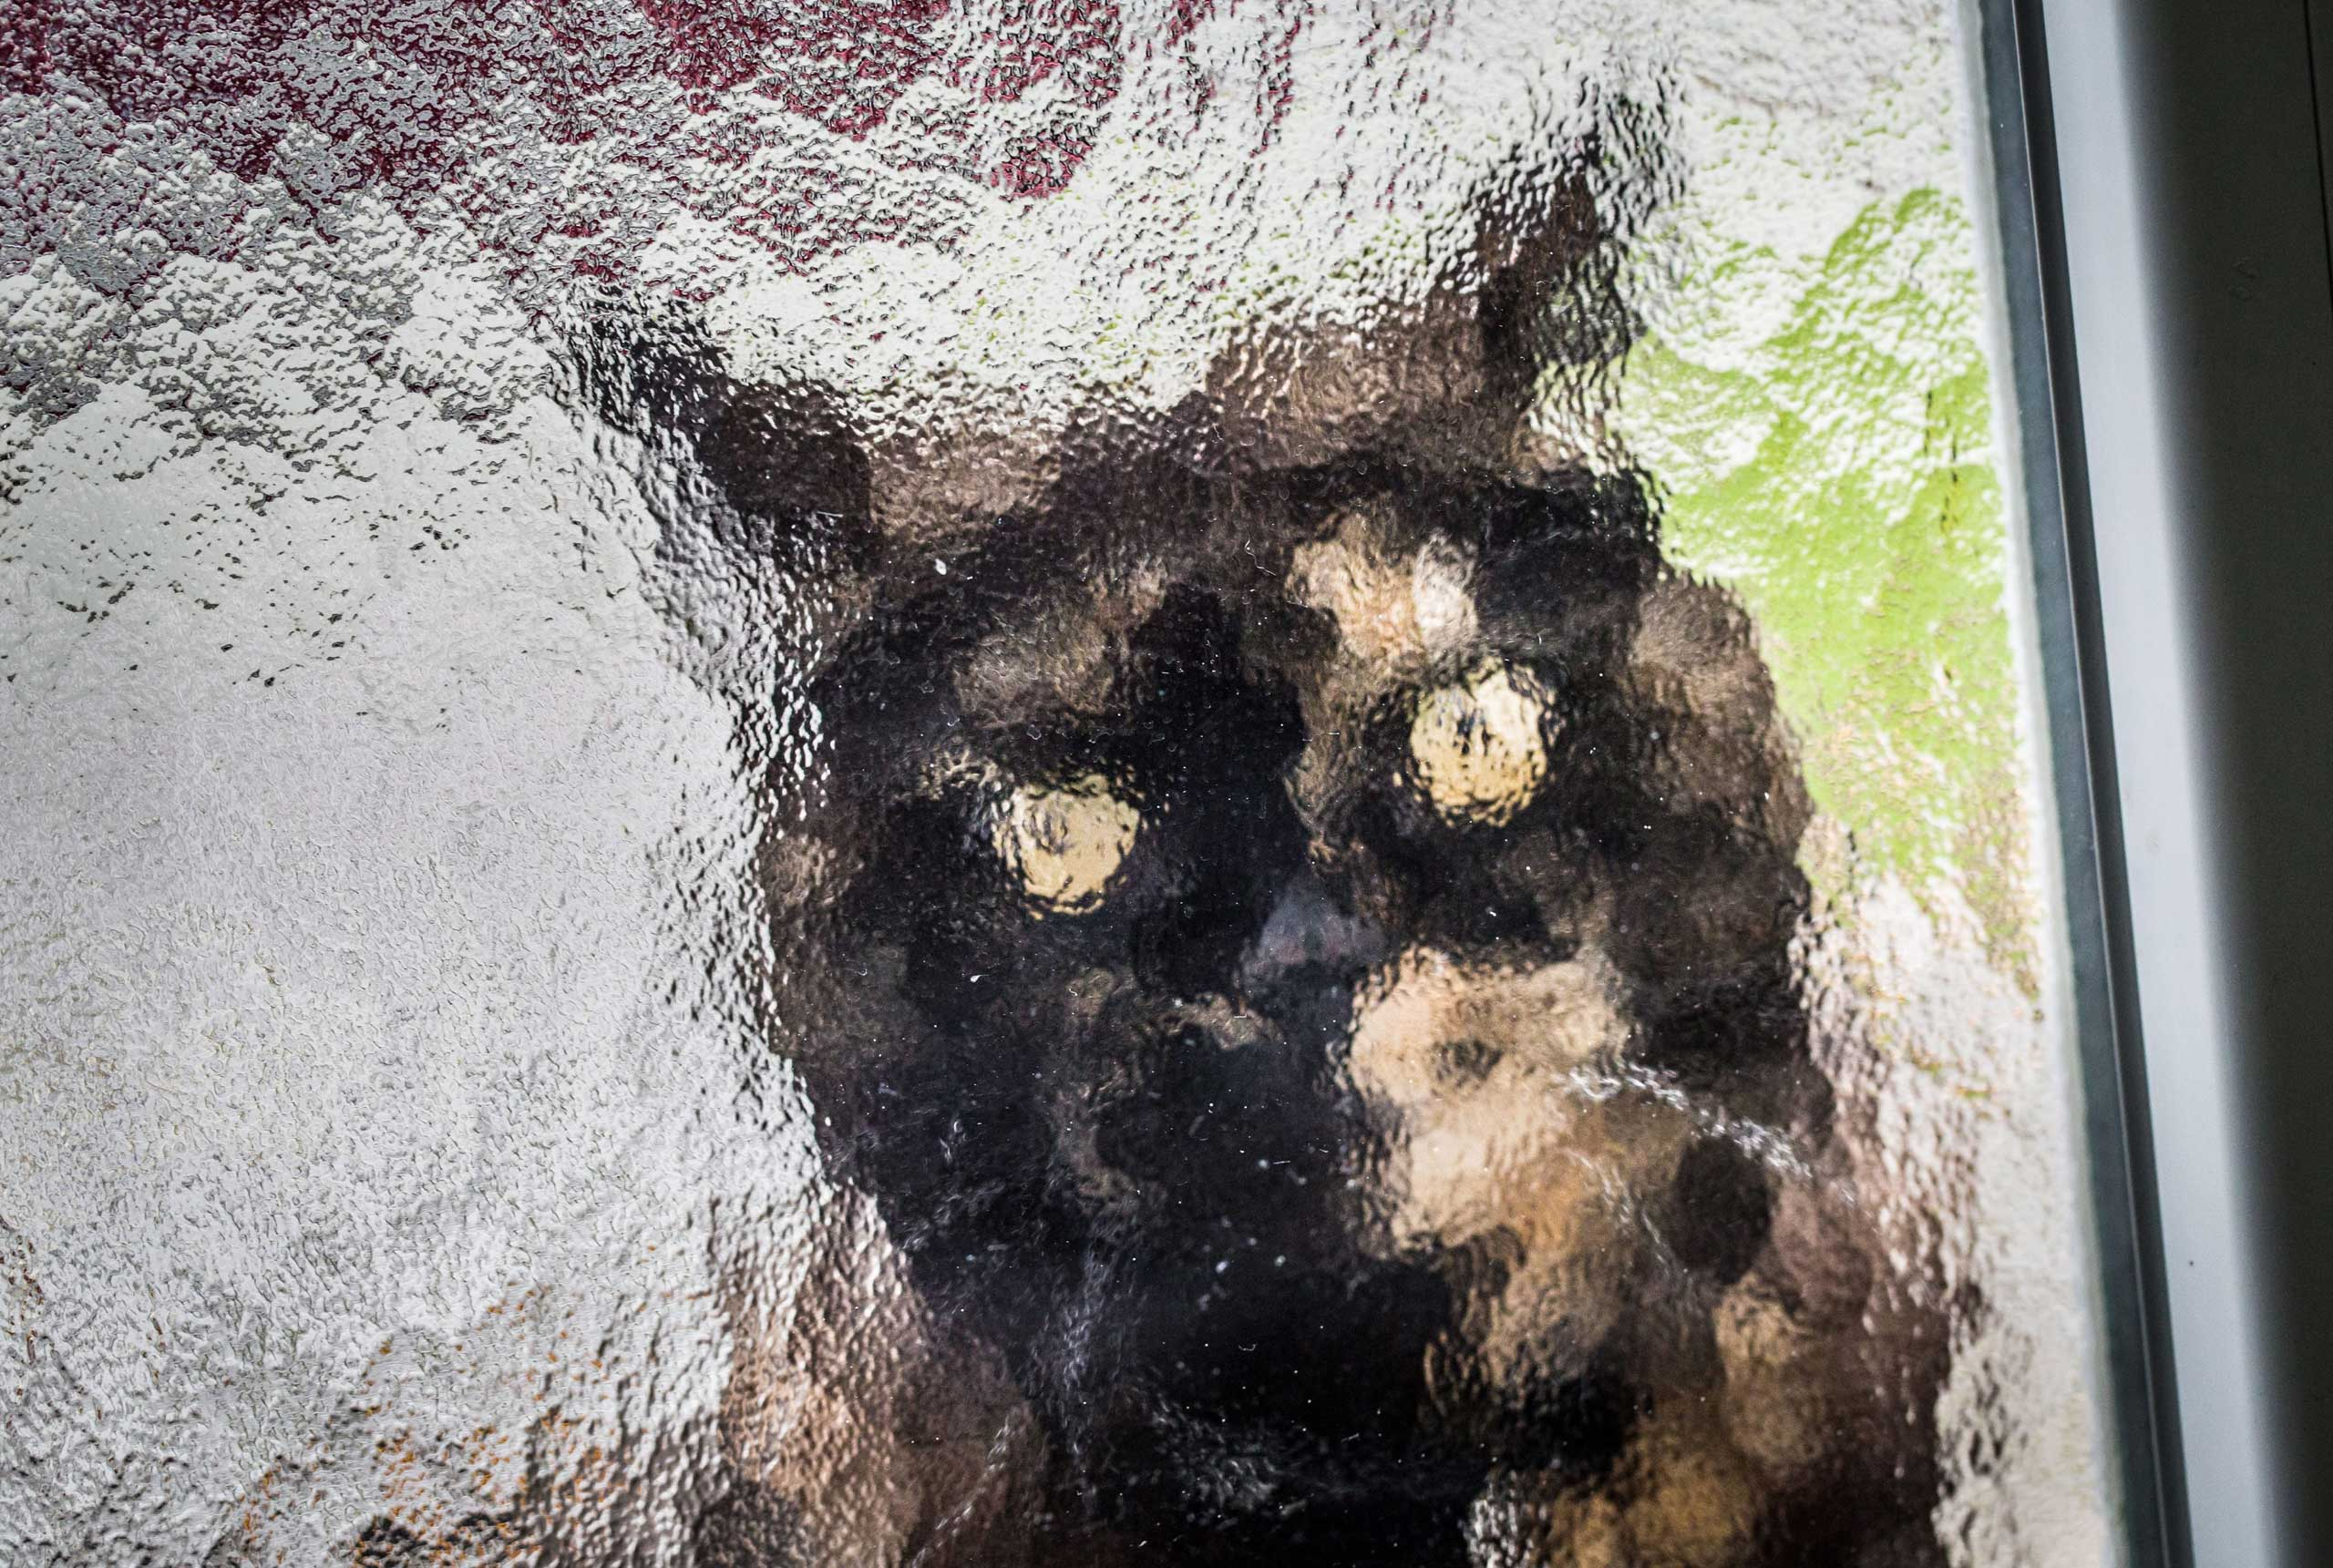 Nov. 3, 2014. A cat sits behind a glass pane in the front door waiting to be let in from the rain in Frankfurt.